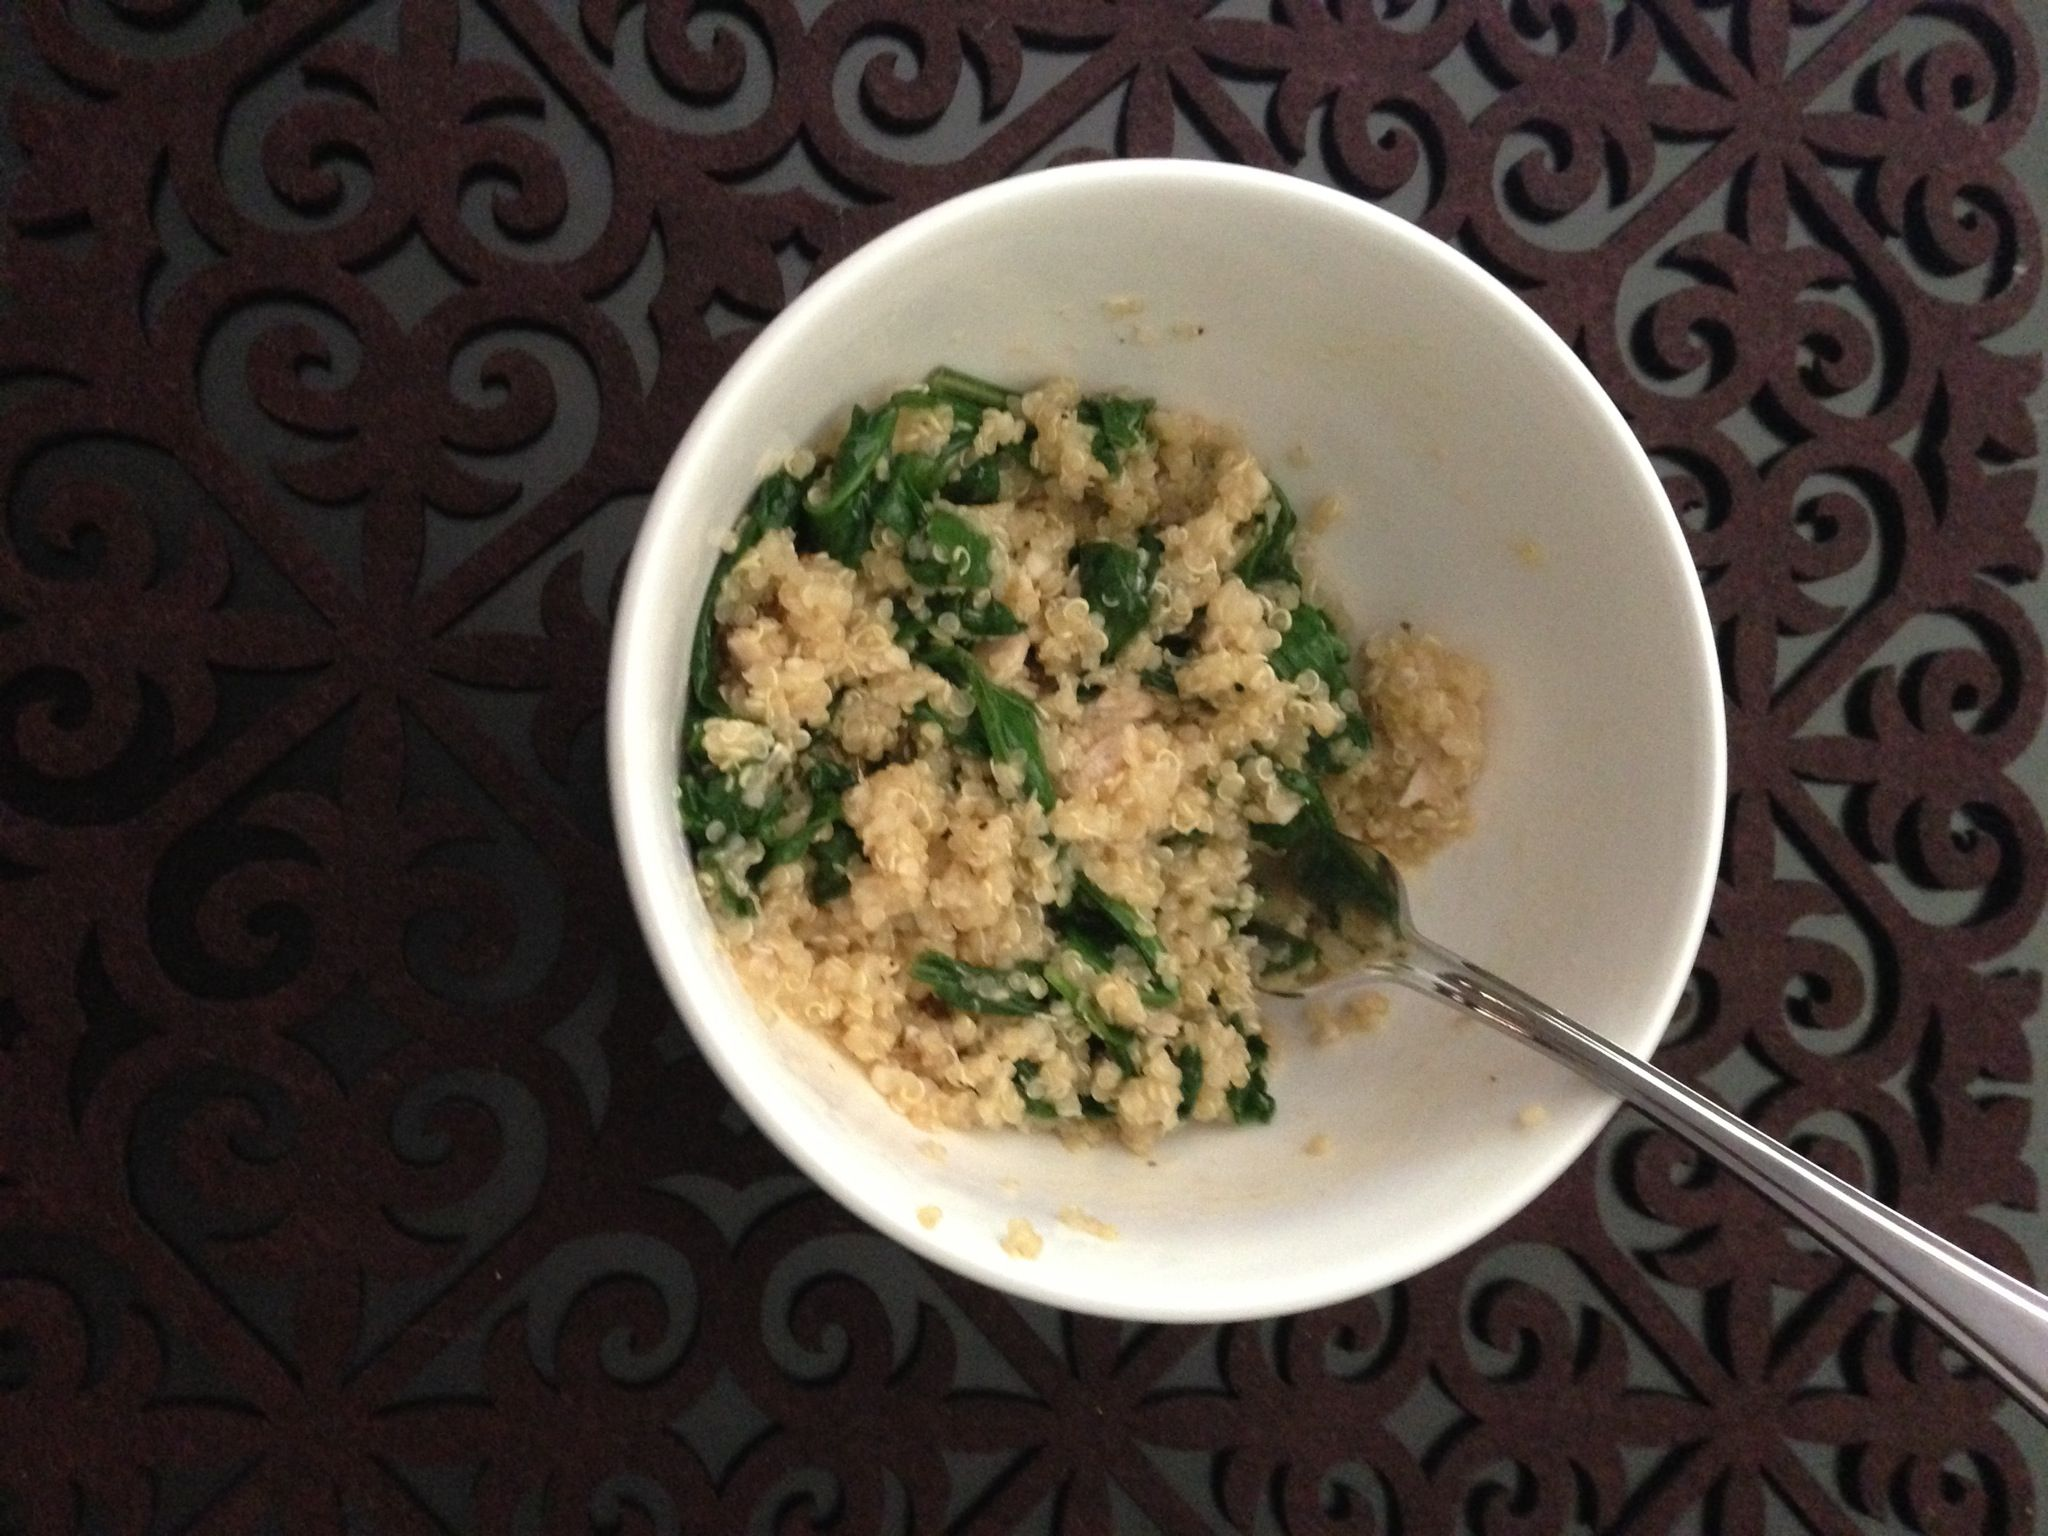 Made this quinoa dish for lunch. Yummo